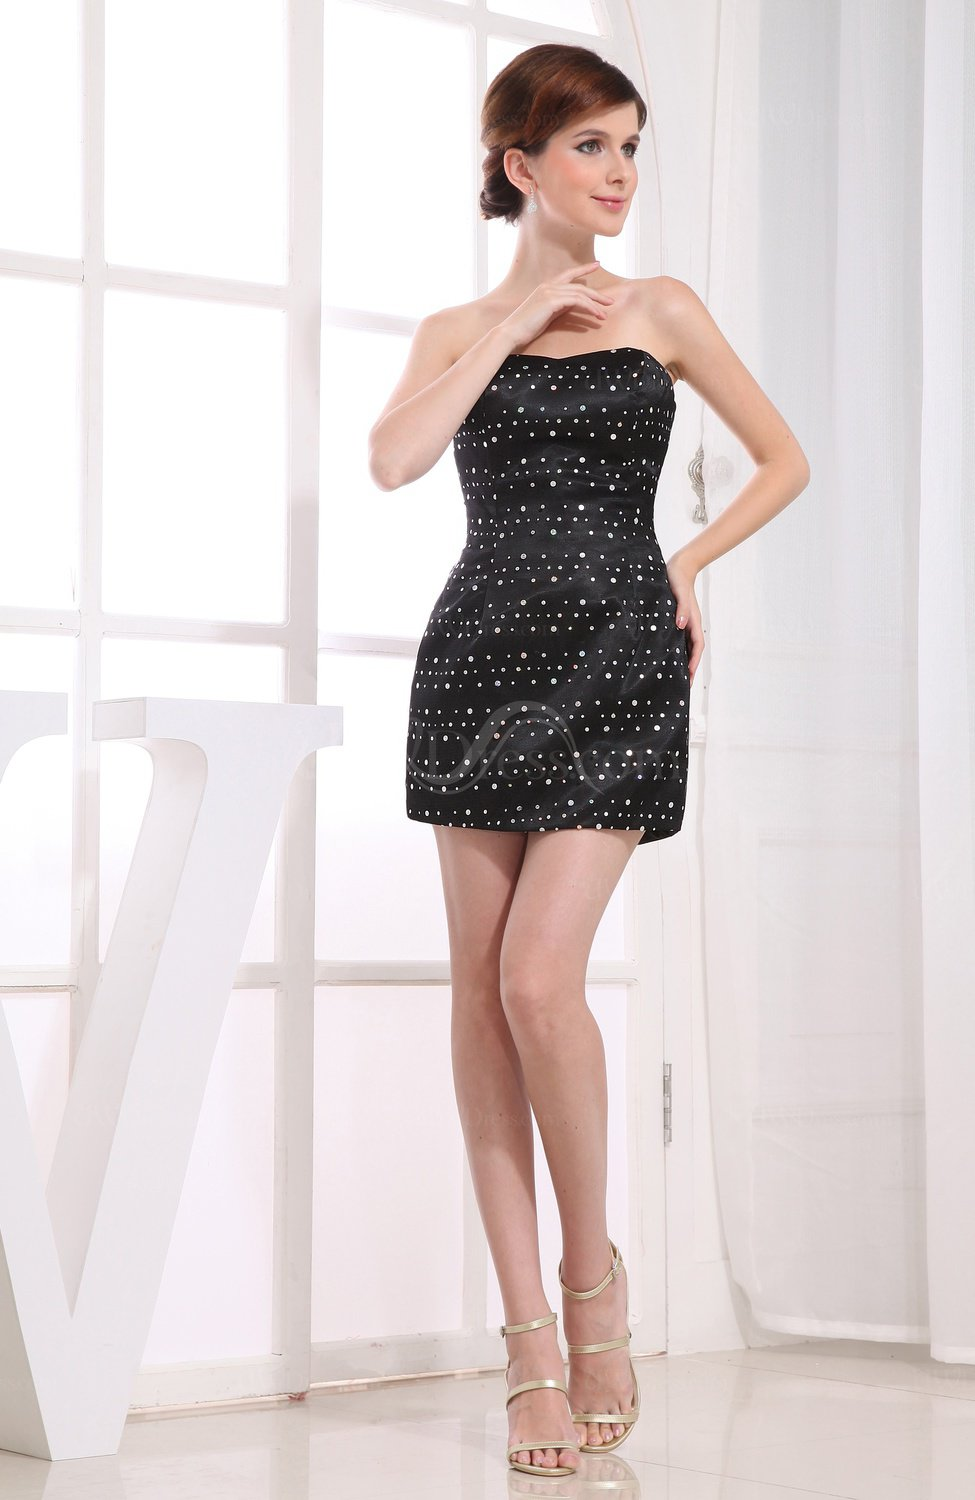 Buy low price, high quality plain black strapless dress with worldwide shipping on salestopp1se.gq